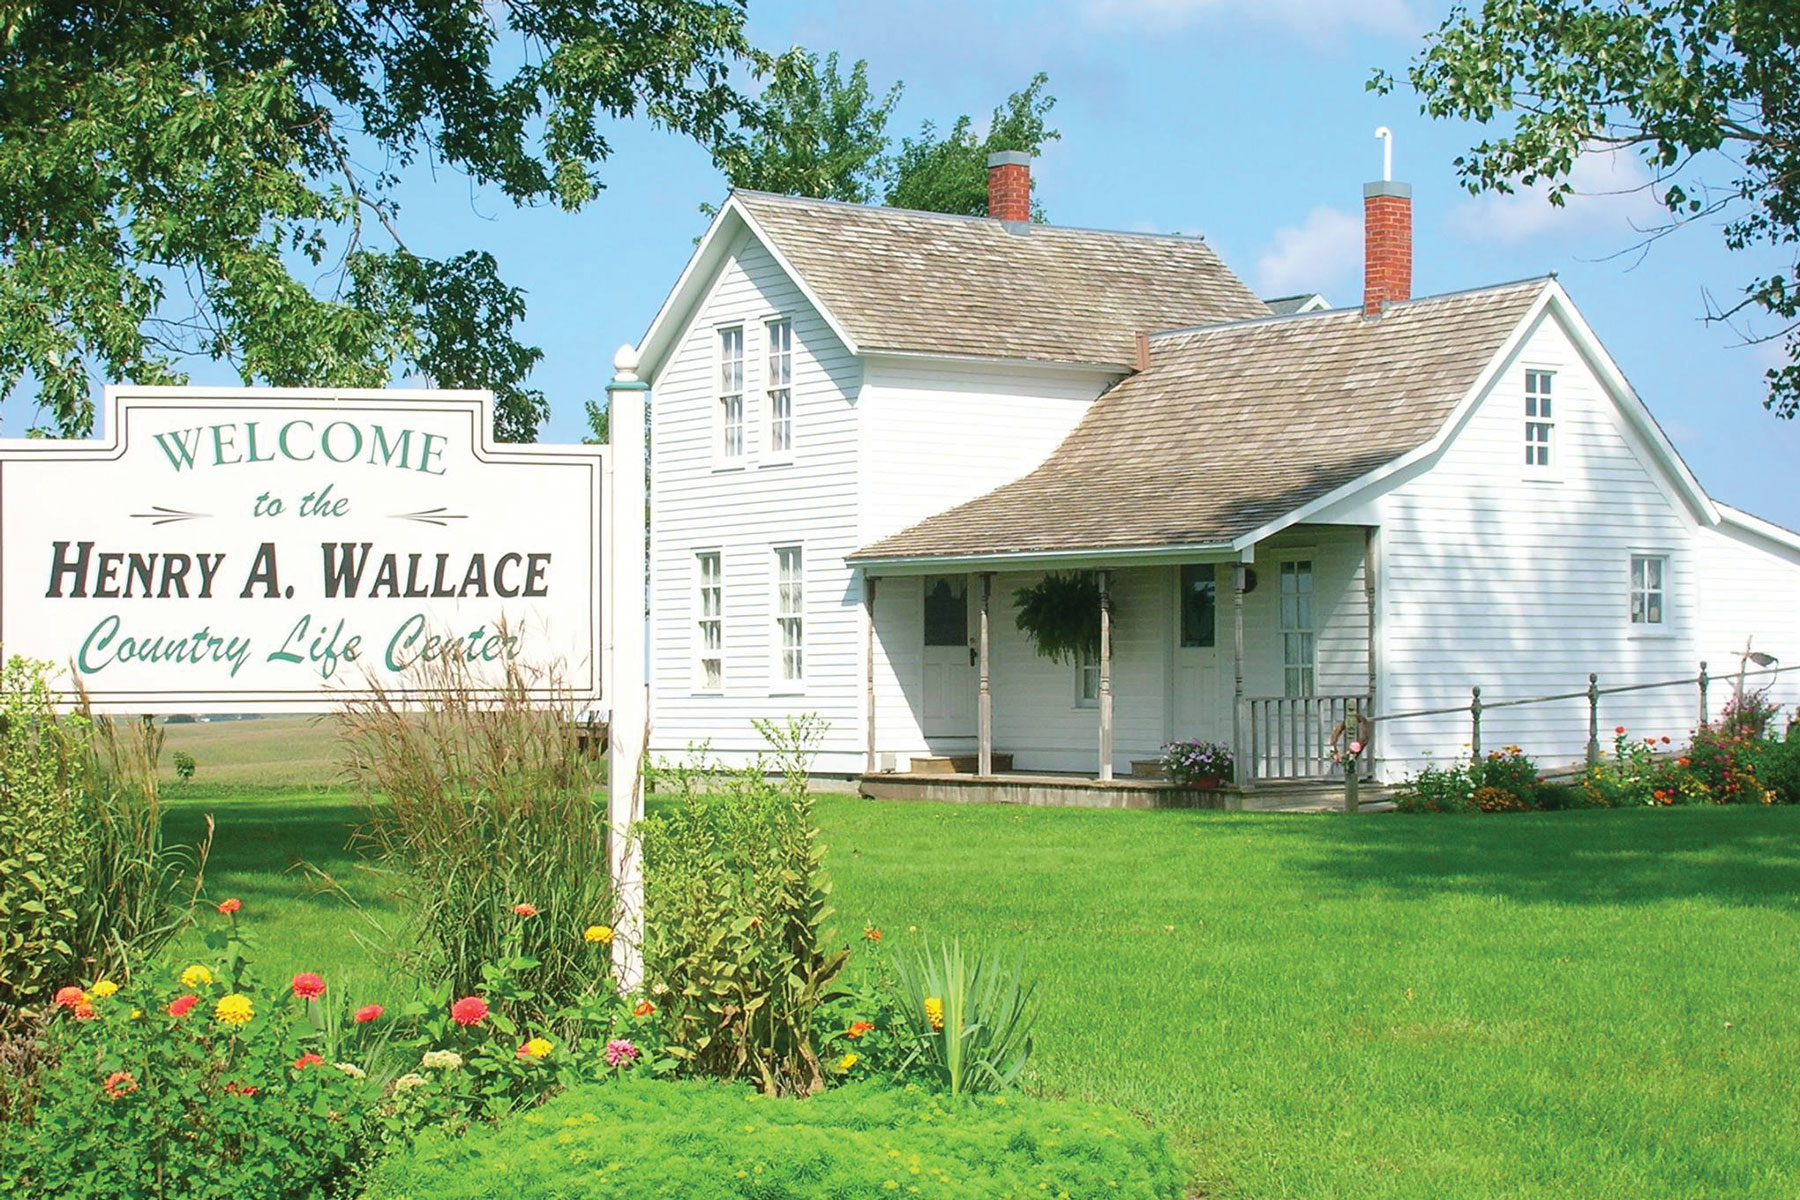 Wallace family trailblazing for generations